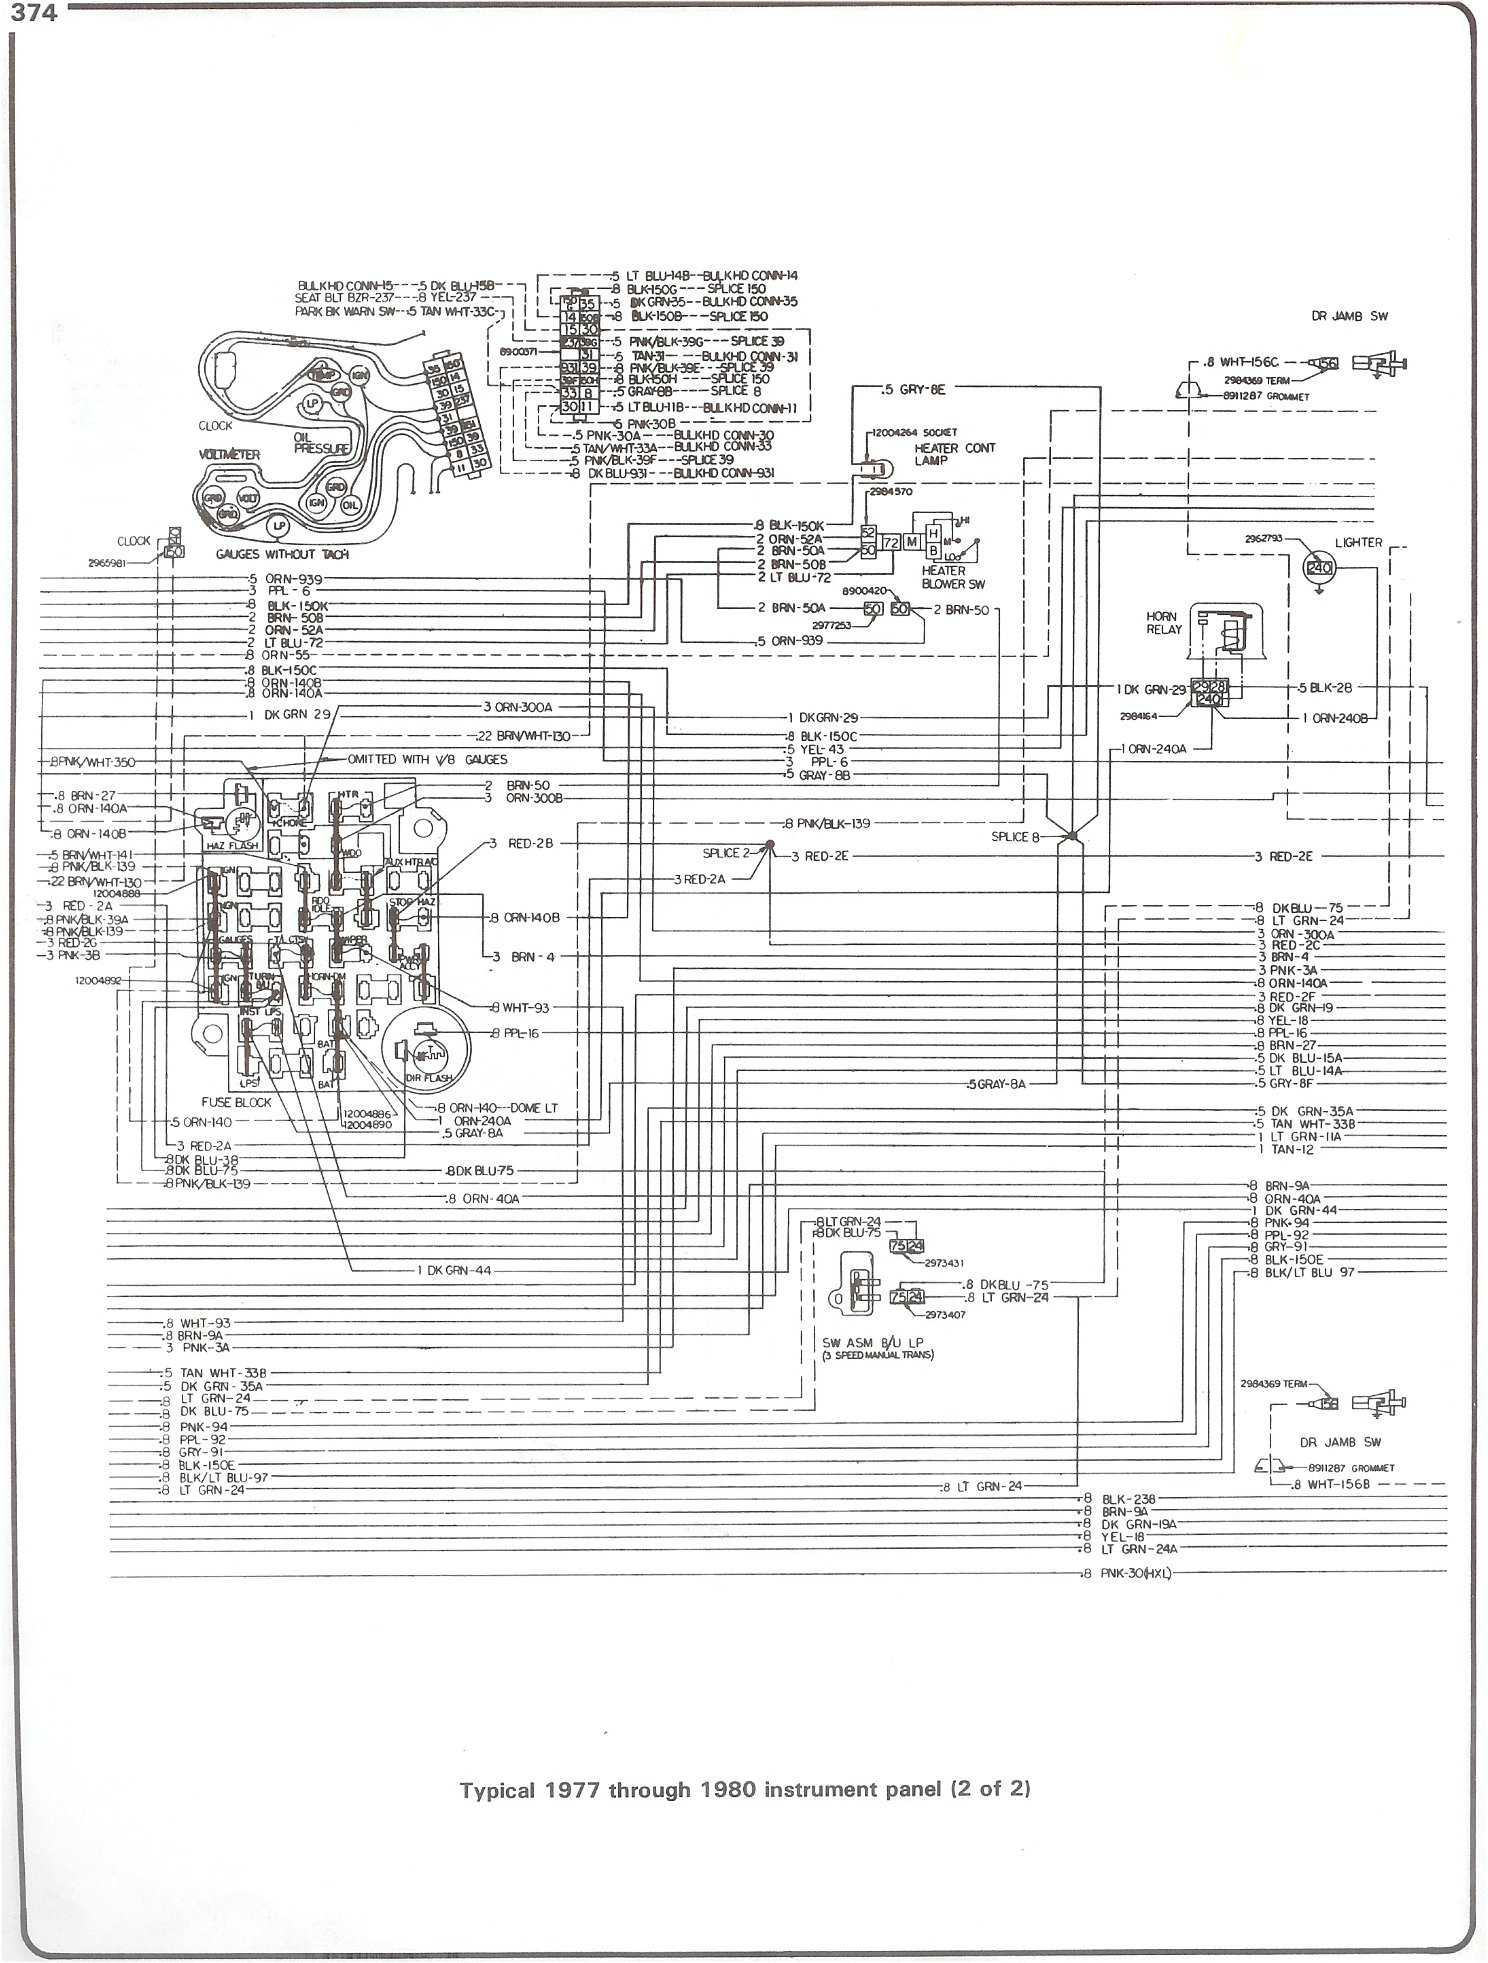 87 chevy wiring diagram schematic under hood    wiring       schematic    for 1978 cheny blazer    chevy     under hood    wiring       schematic    for 1978 cheny blazer    chevy